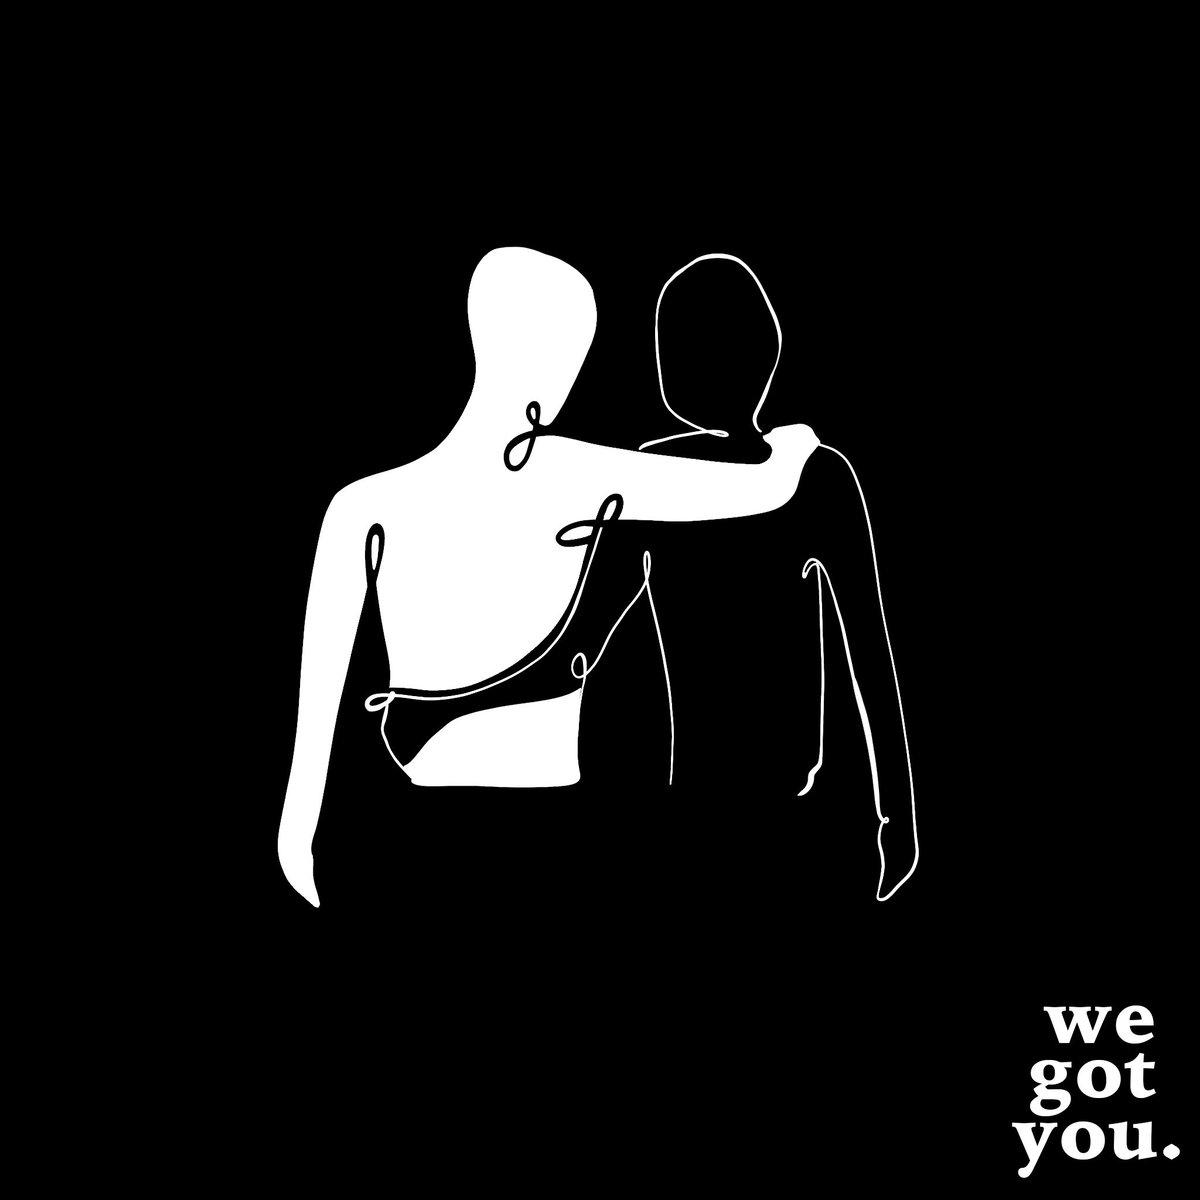 #NewProfilePic   let's put an end to racism in sport ✊🏾   #WeGotYou 🤜🏻🤛🏾 https://t.co/FNZ6WhoiNL